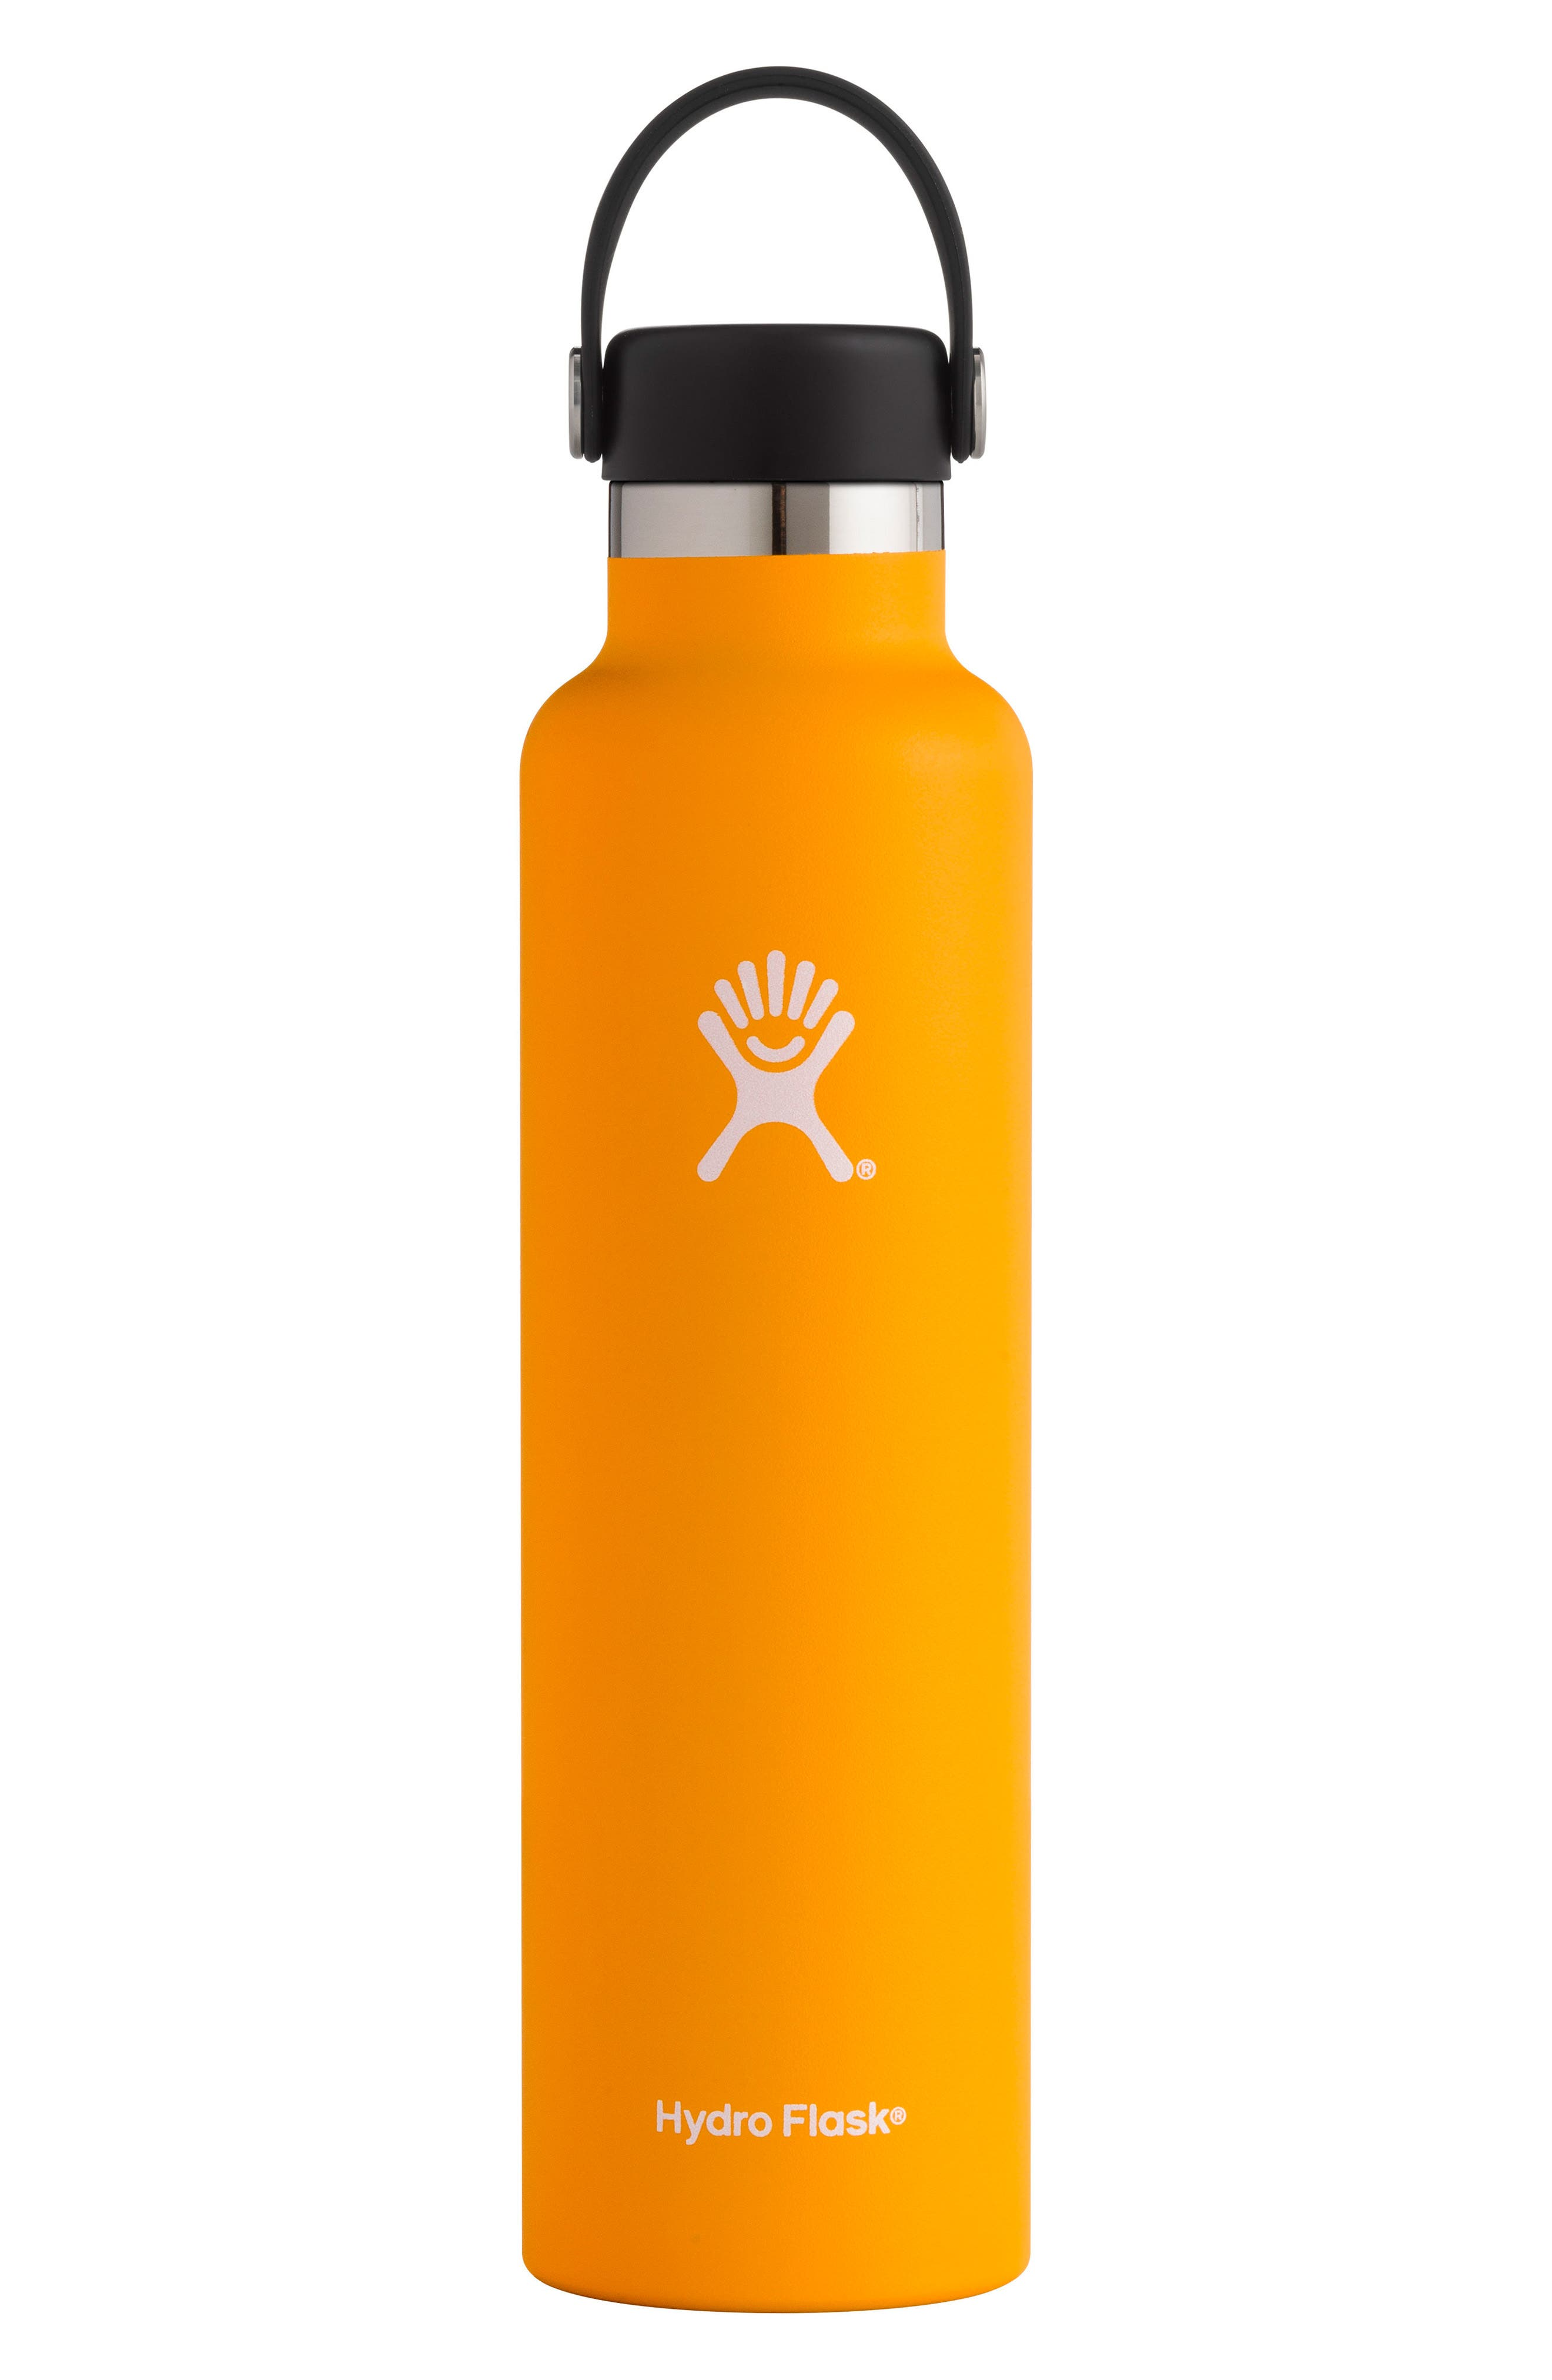 Main Image - Hydro Flask 24-Ounce Standard Mouth Bottle